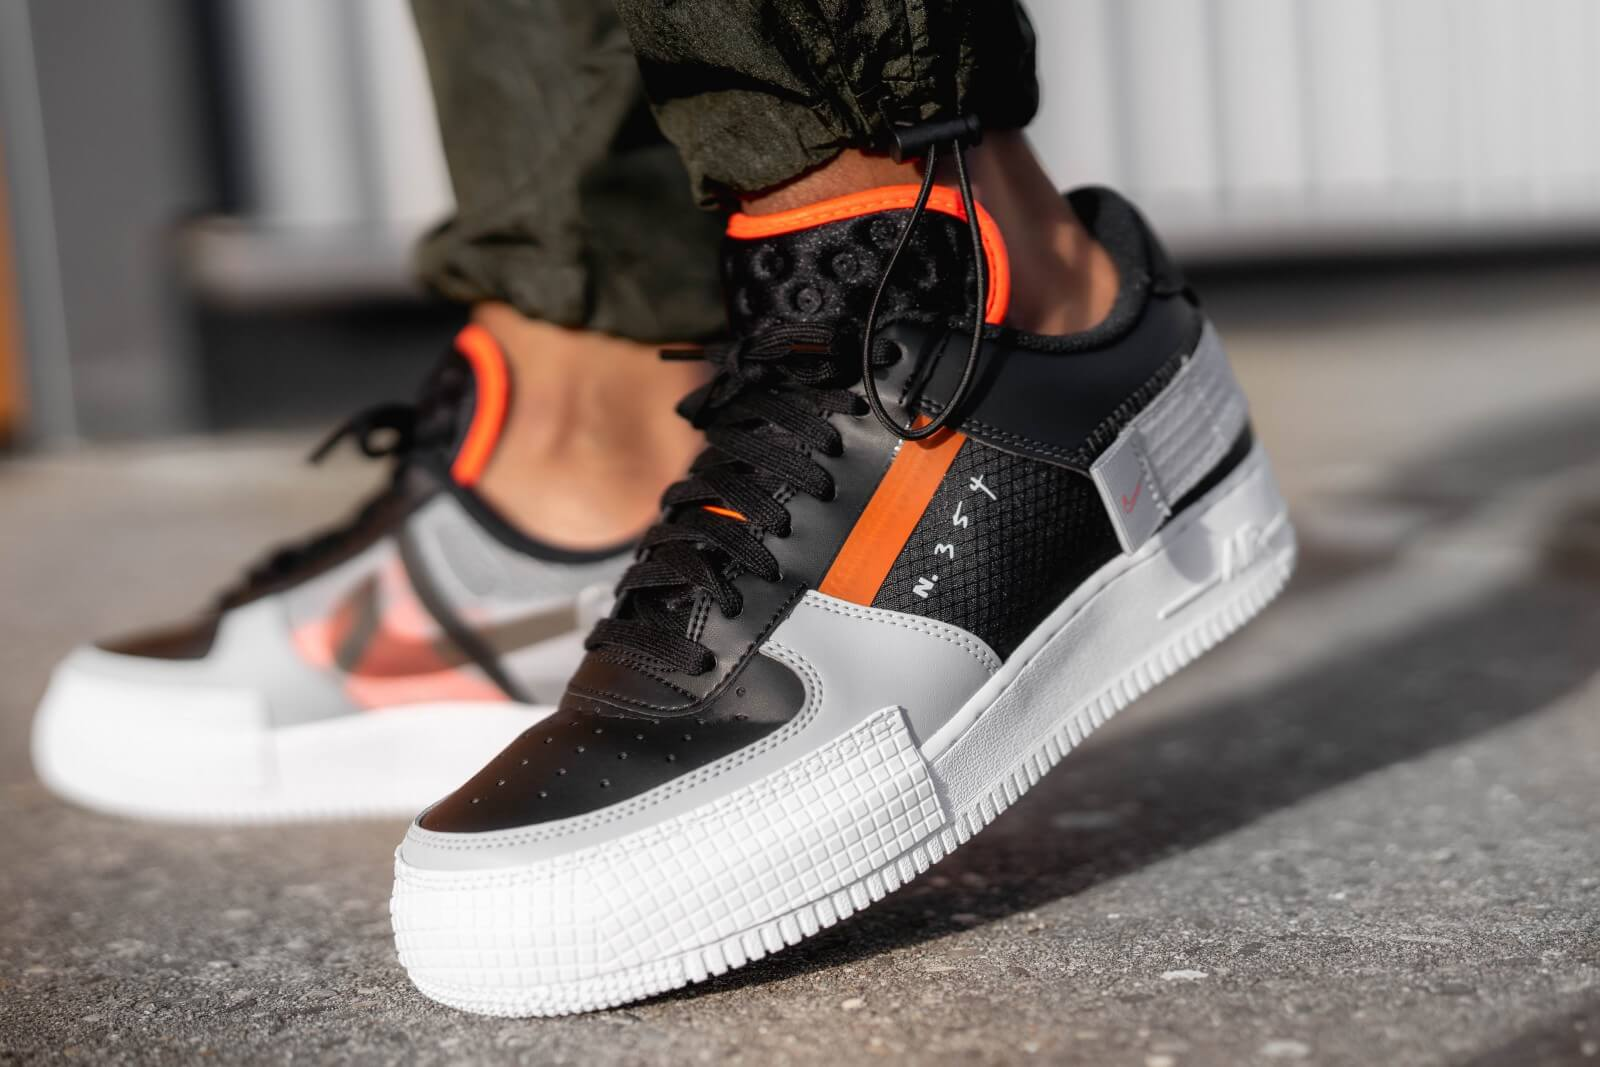 Nike Air Force 1 Type Black/Hyper Crimson - CQ2344-001